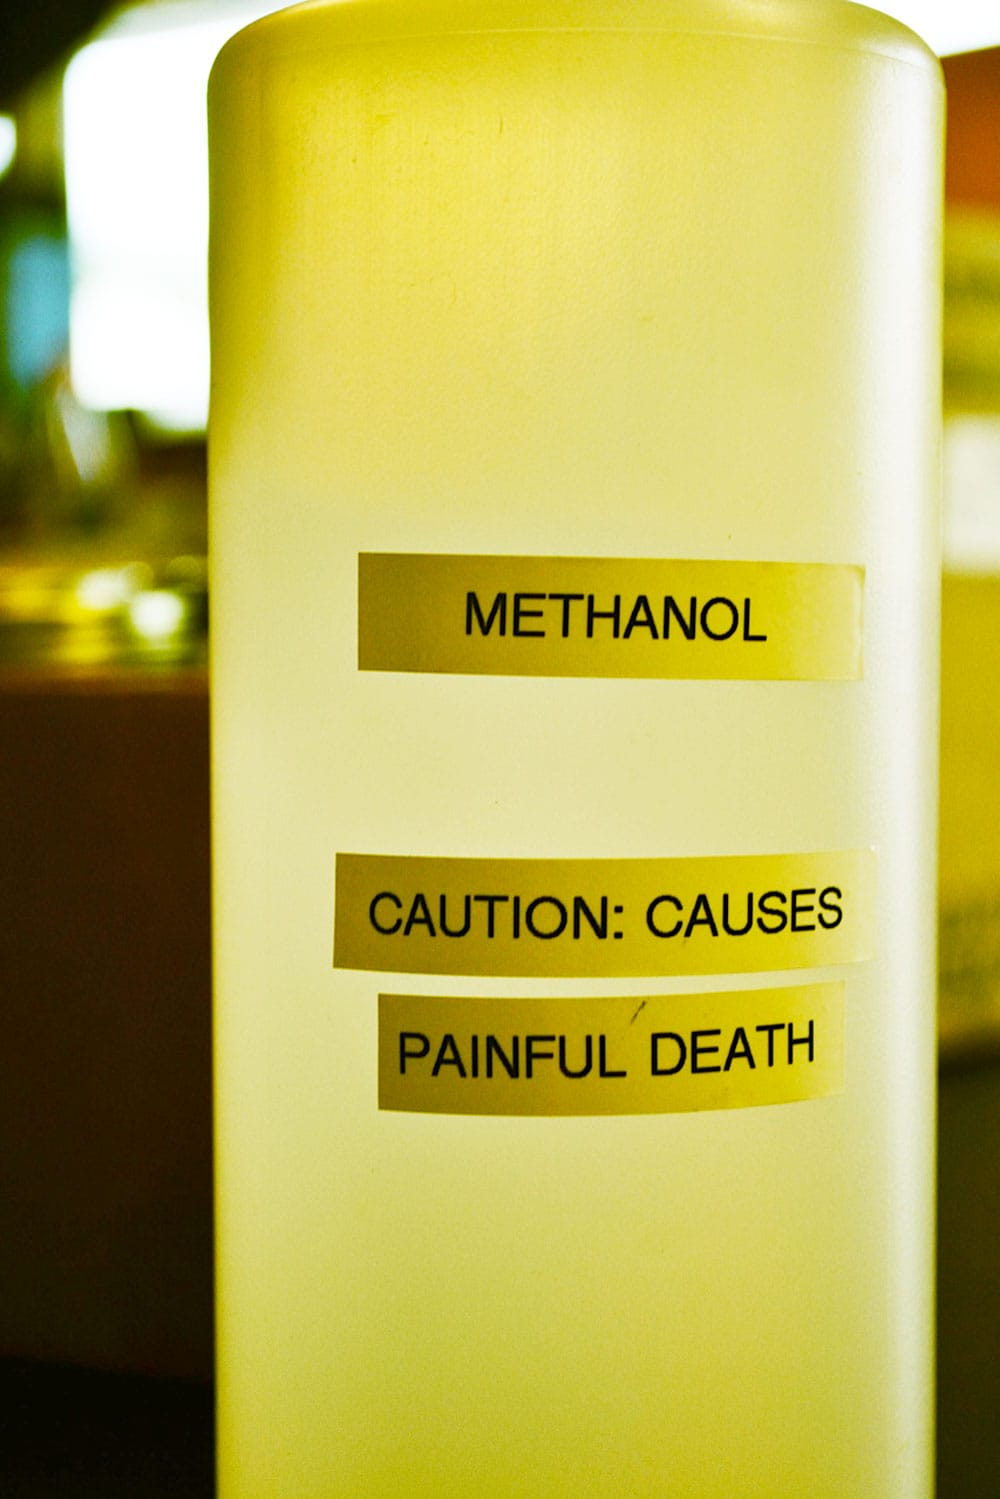 Methanol, an ingredient in biofuels production.